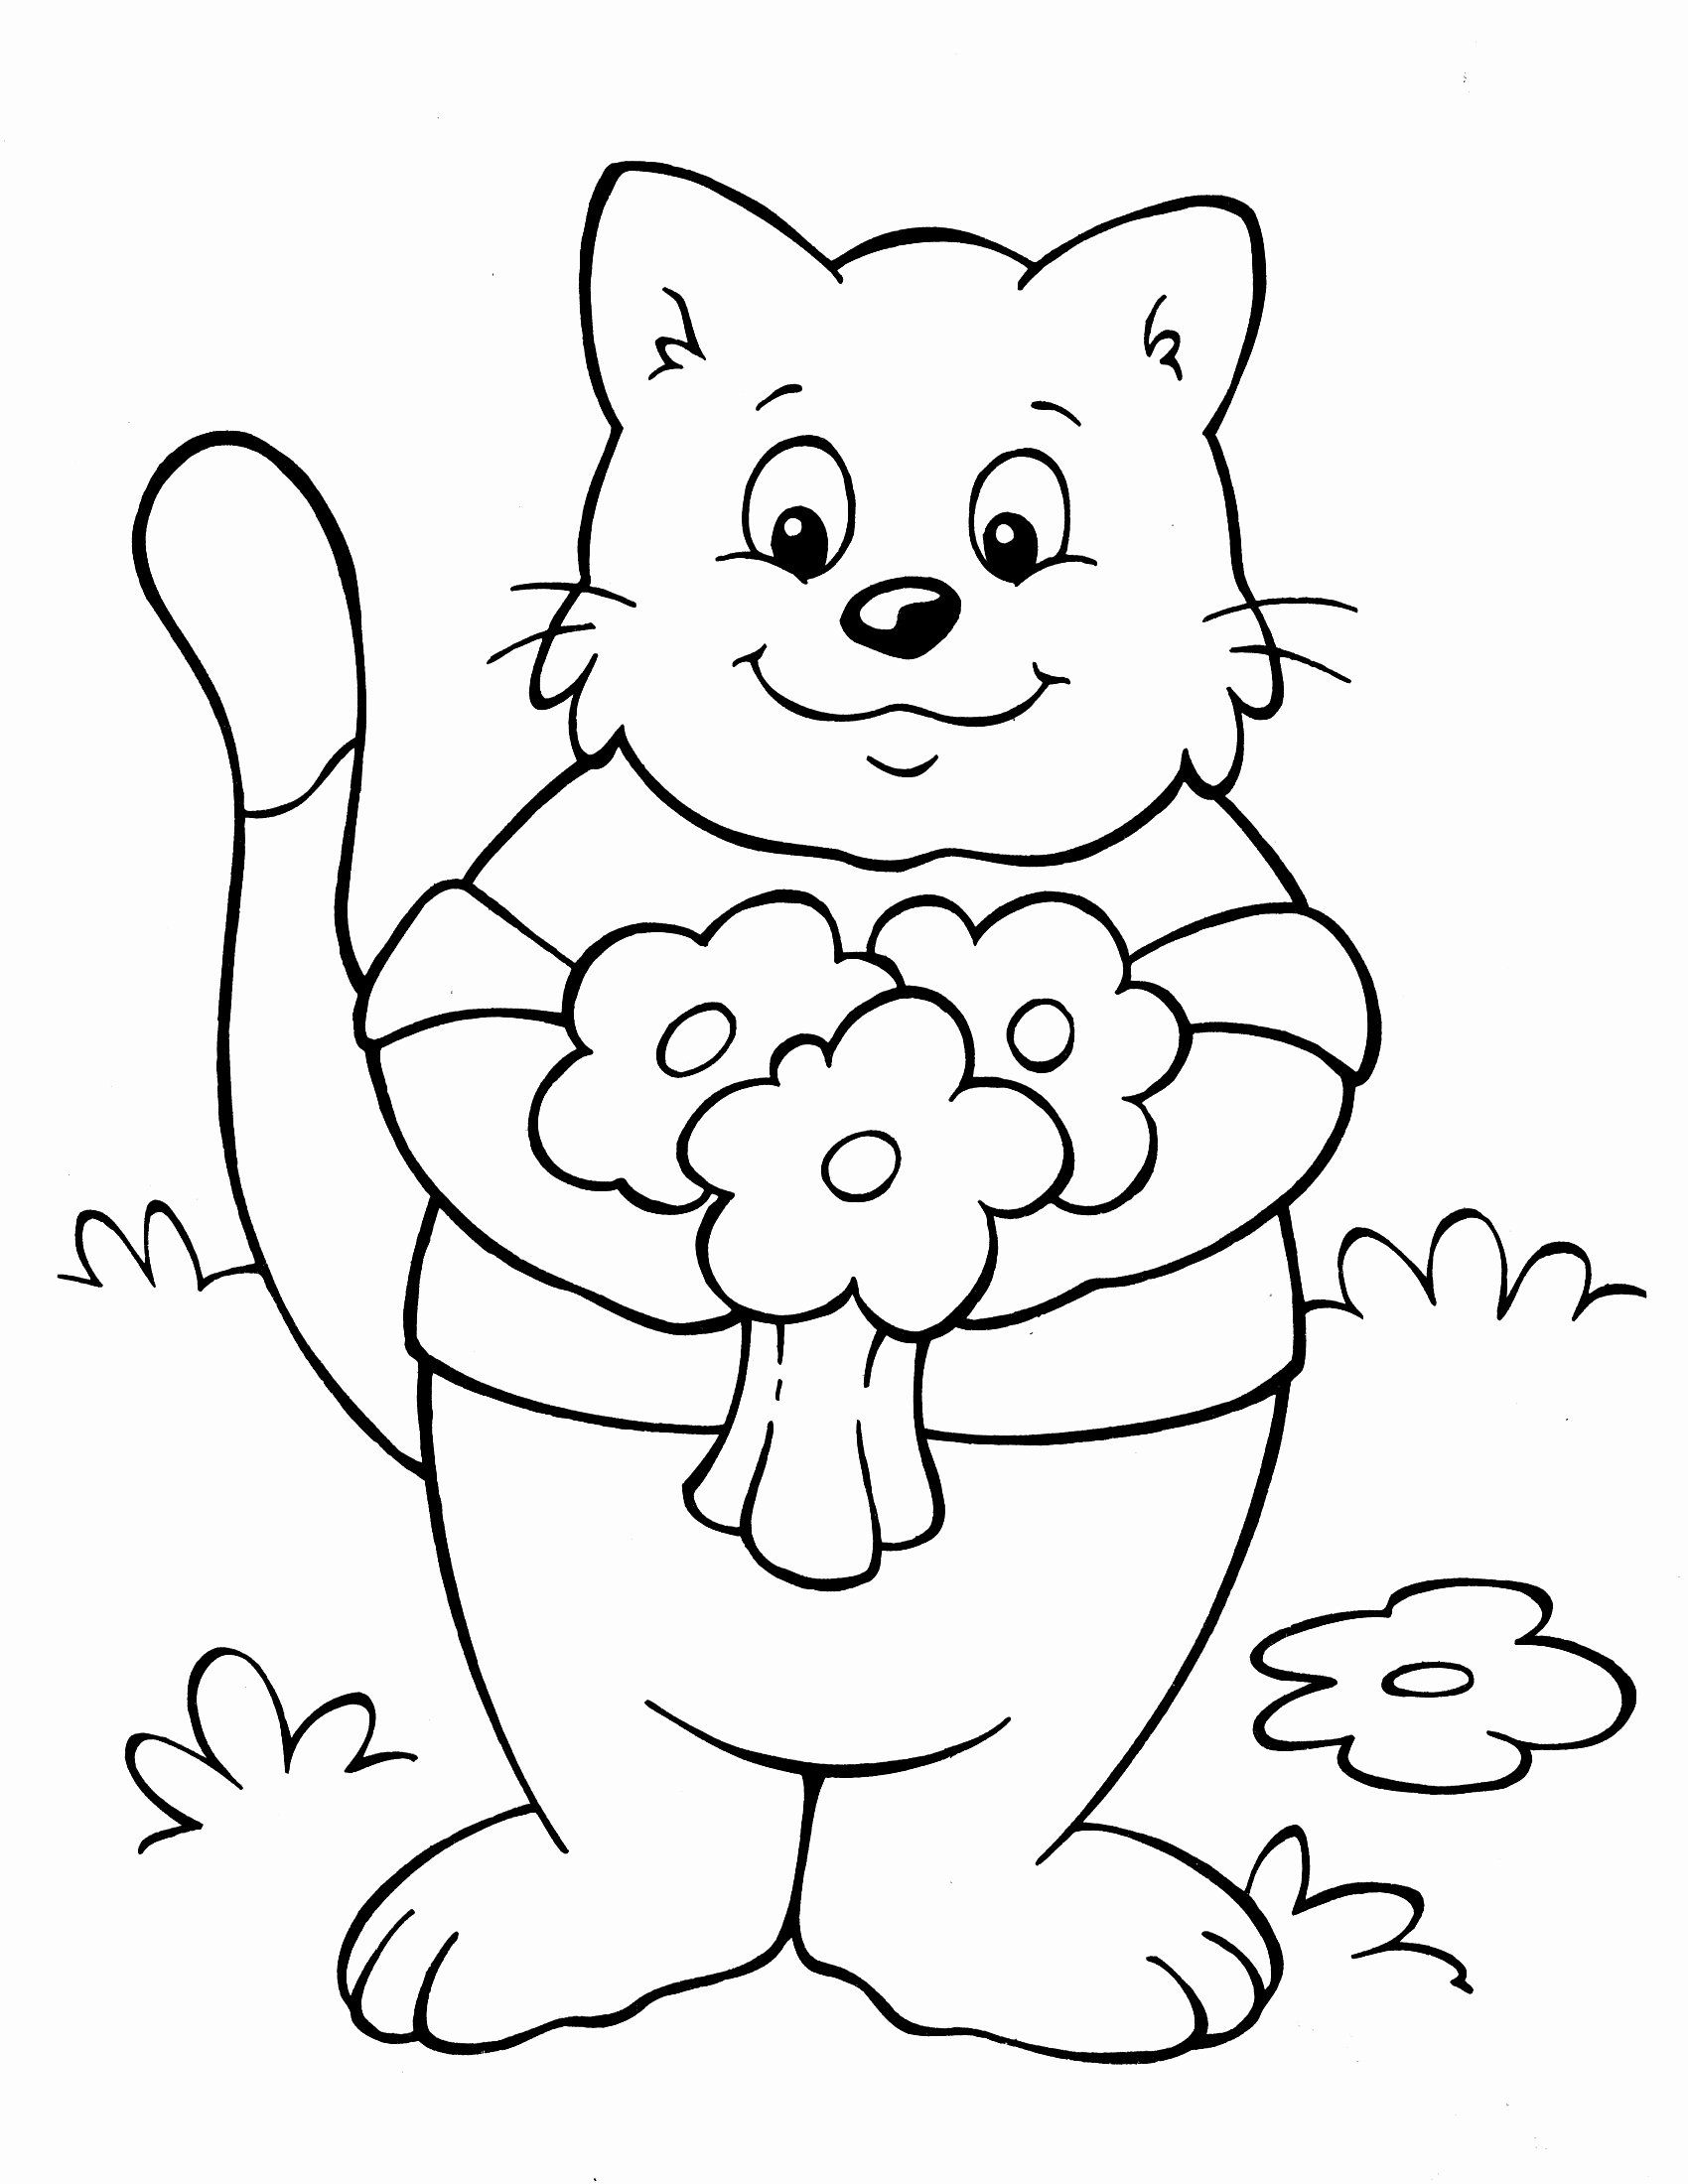 21 Turn Photo Into Coloring Page Free Online In 2020